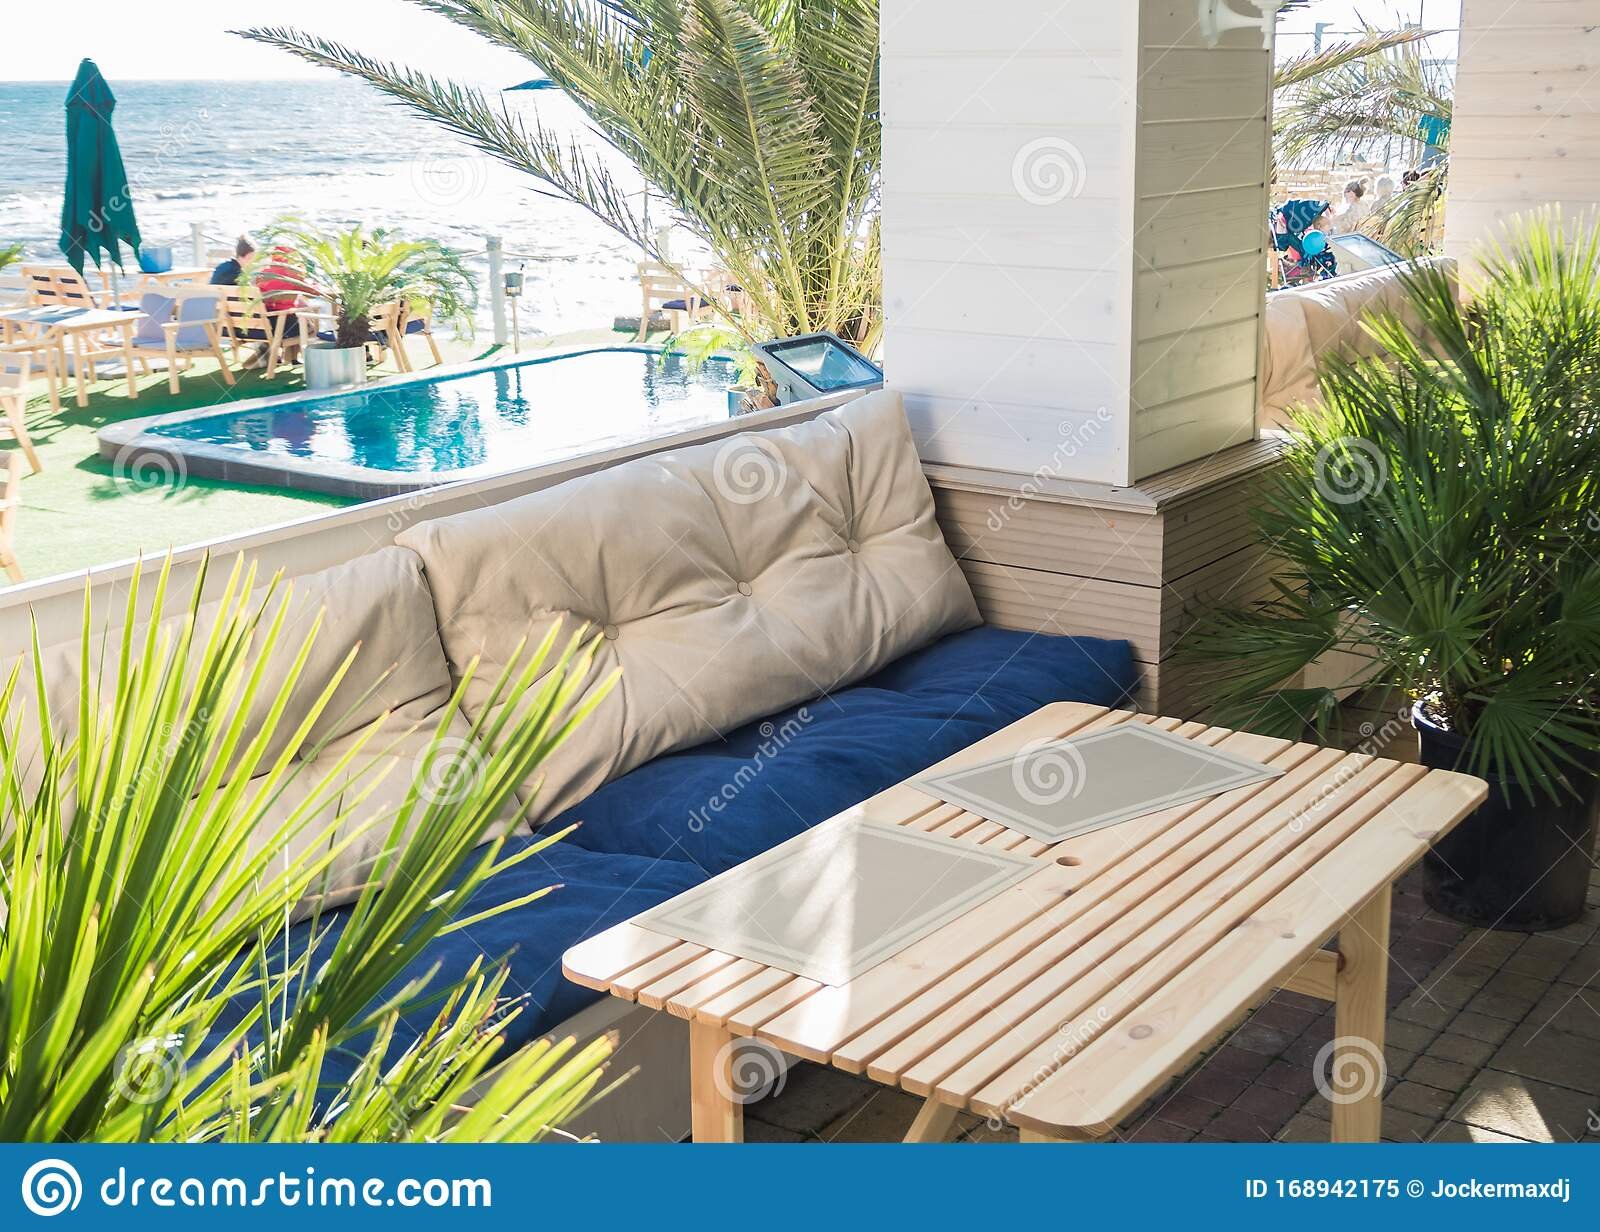 Soft Sofa And Table In An Outdoor Cafe With A Pool Stock Image Image Of Furniture Decor 168942175